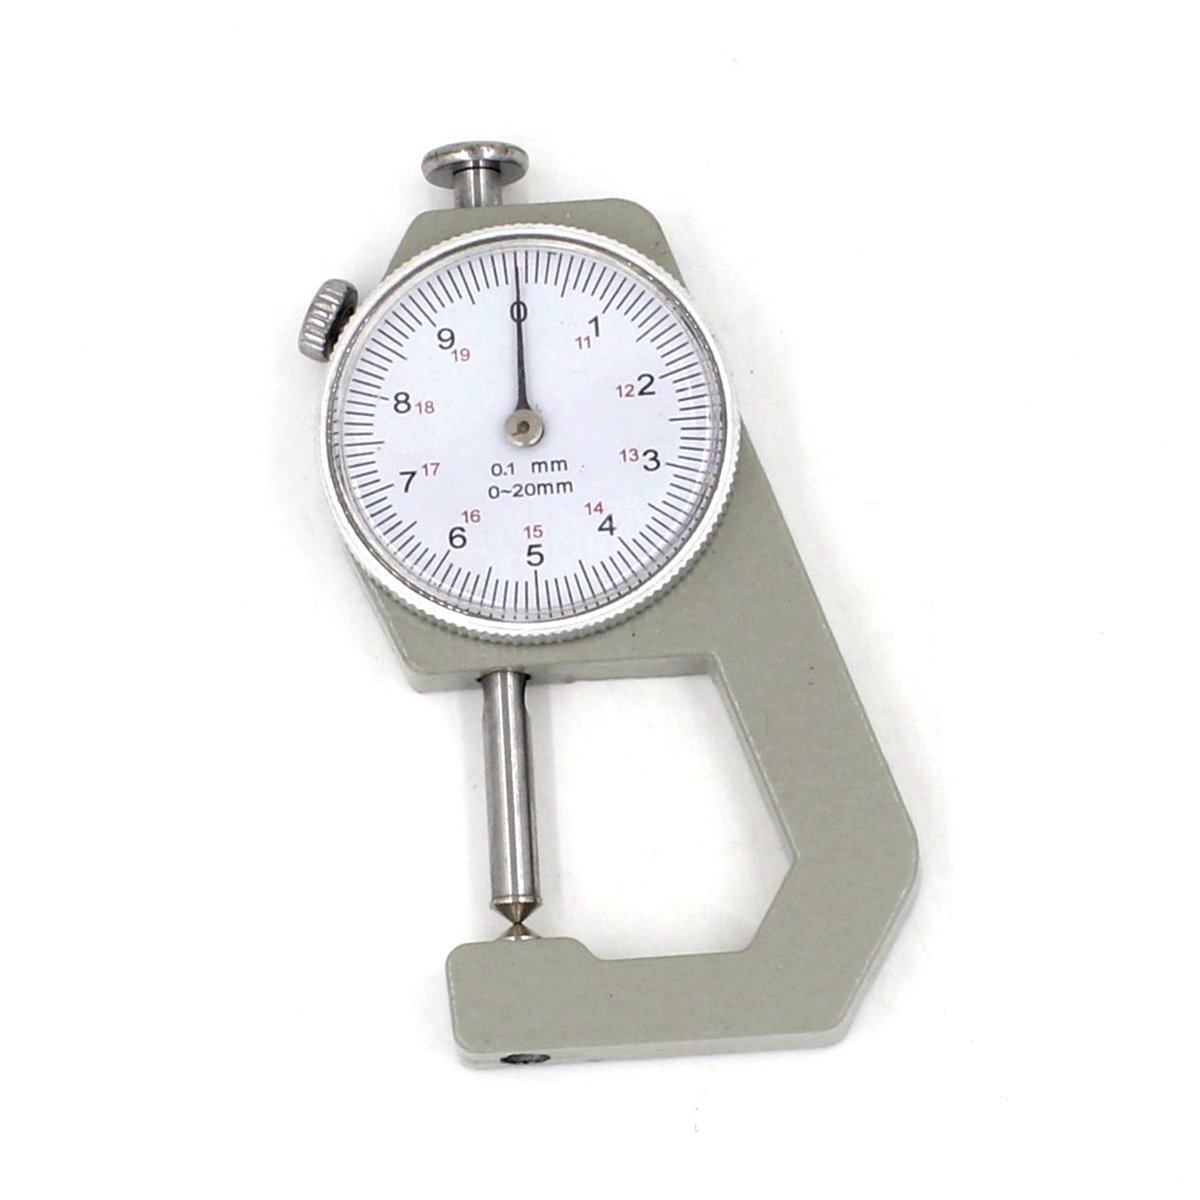 Dial Thickness Gauge 0-20mm Cusp Head Gage 0.1 Increments Inspection Tool Metric Reading